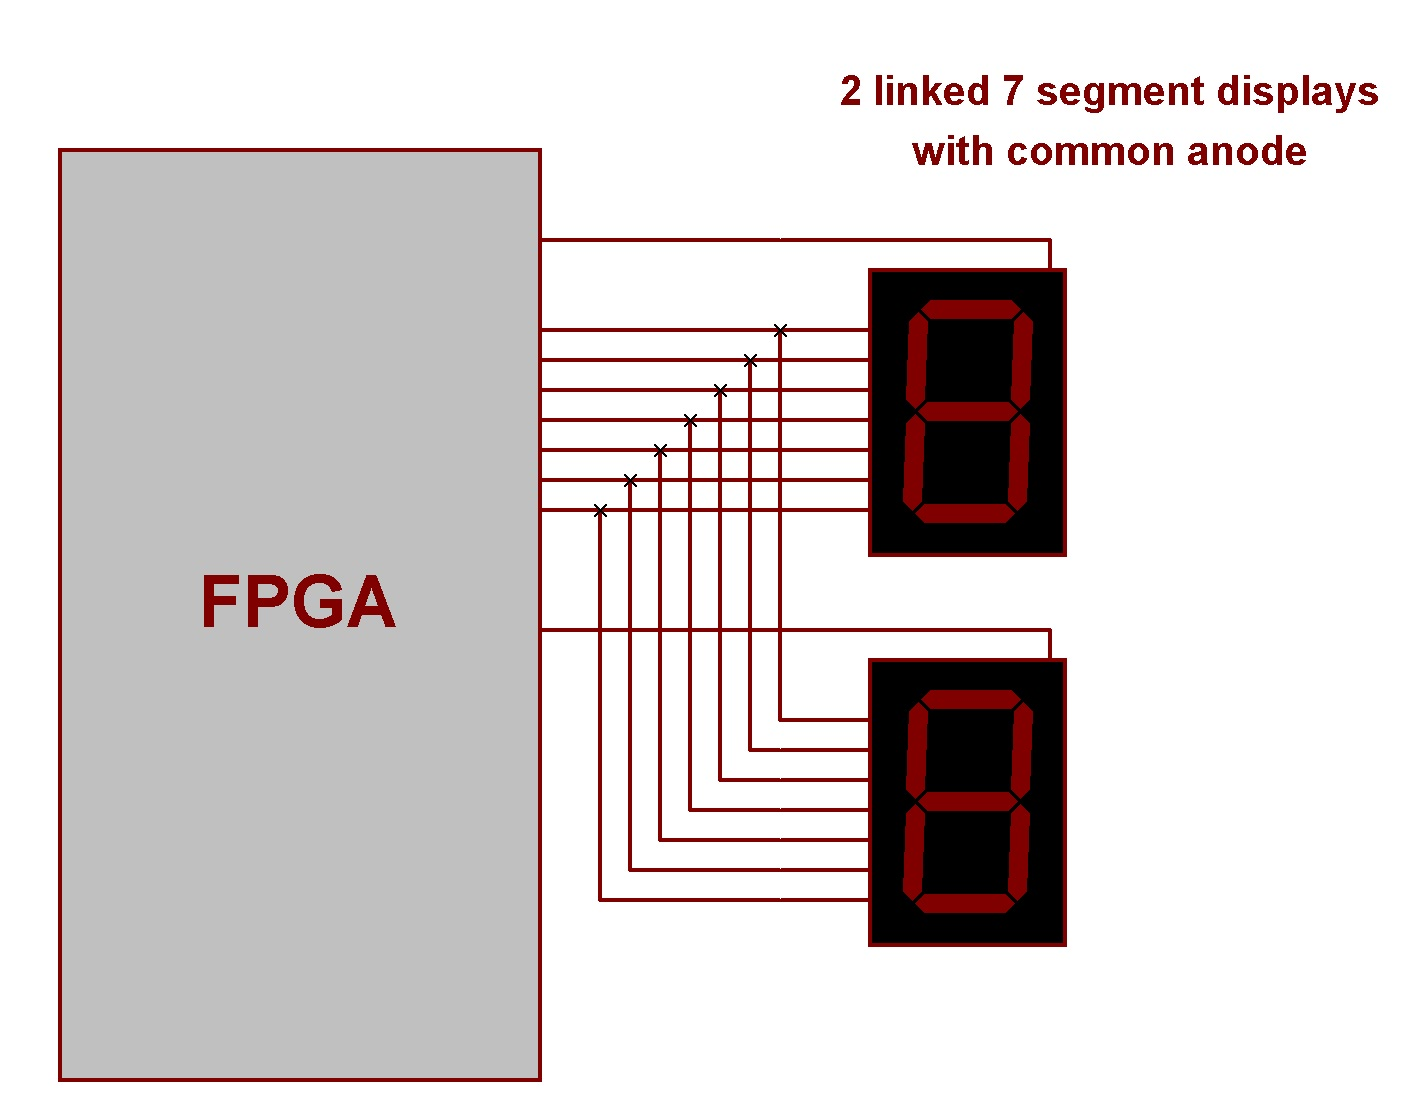 Groovy Likewise Bcd To 7 Segment Display Circuit On 7 Segment Wiring Wiring Cloud Peadfoxcilixyz